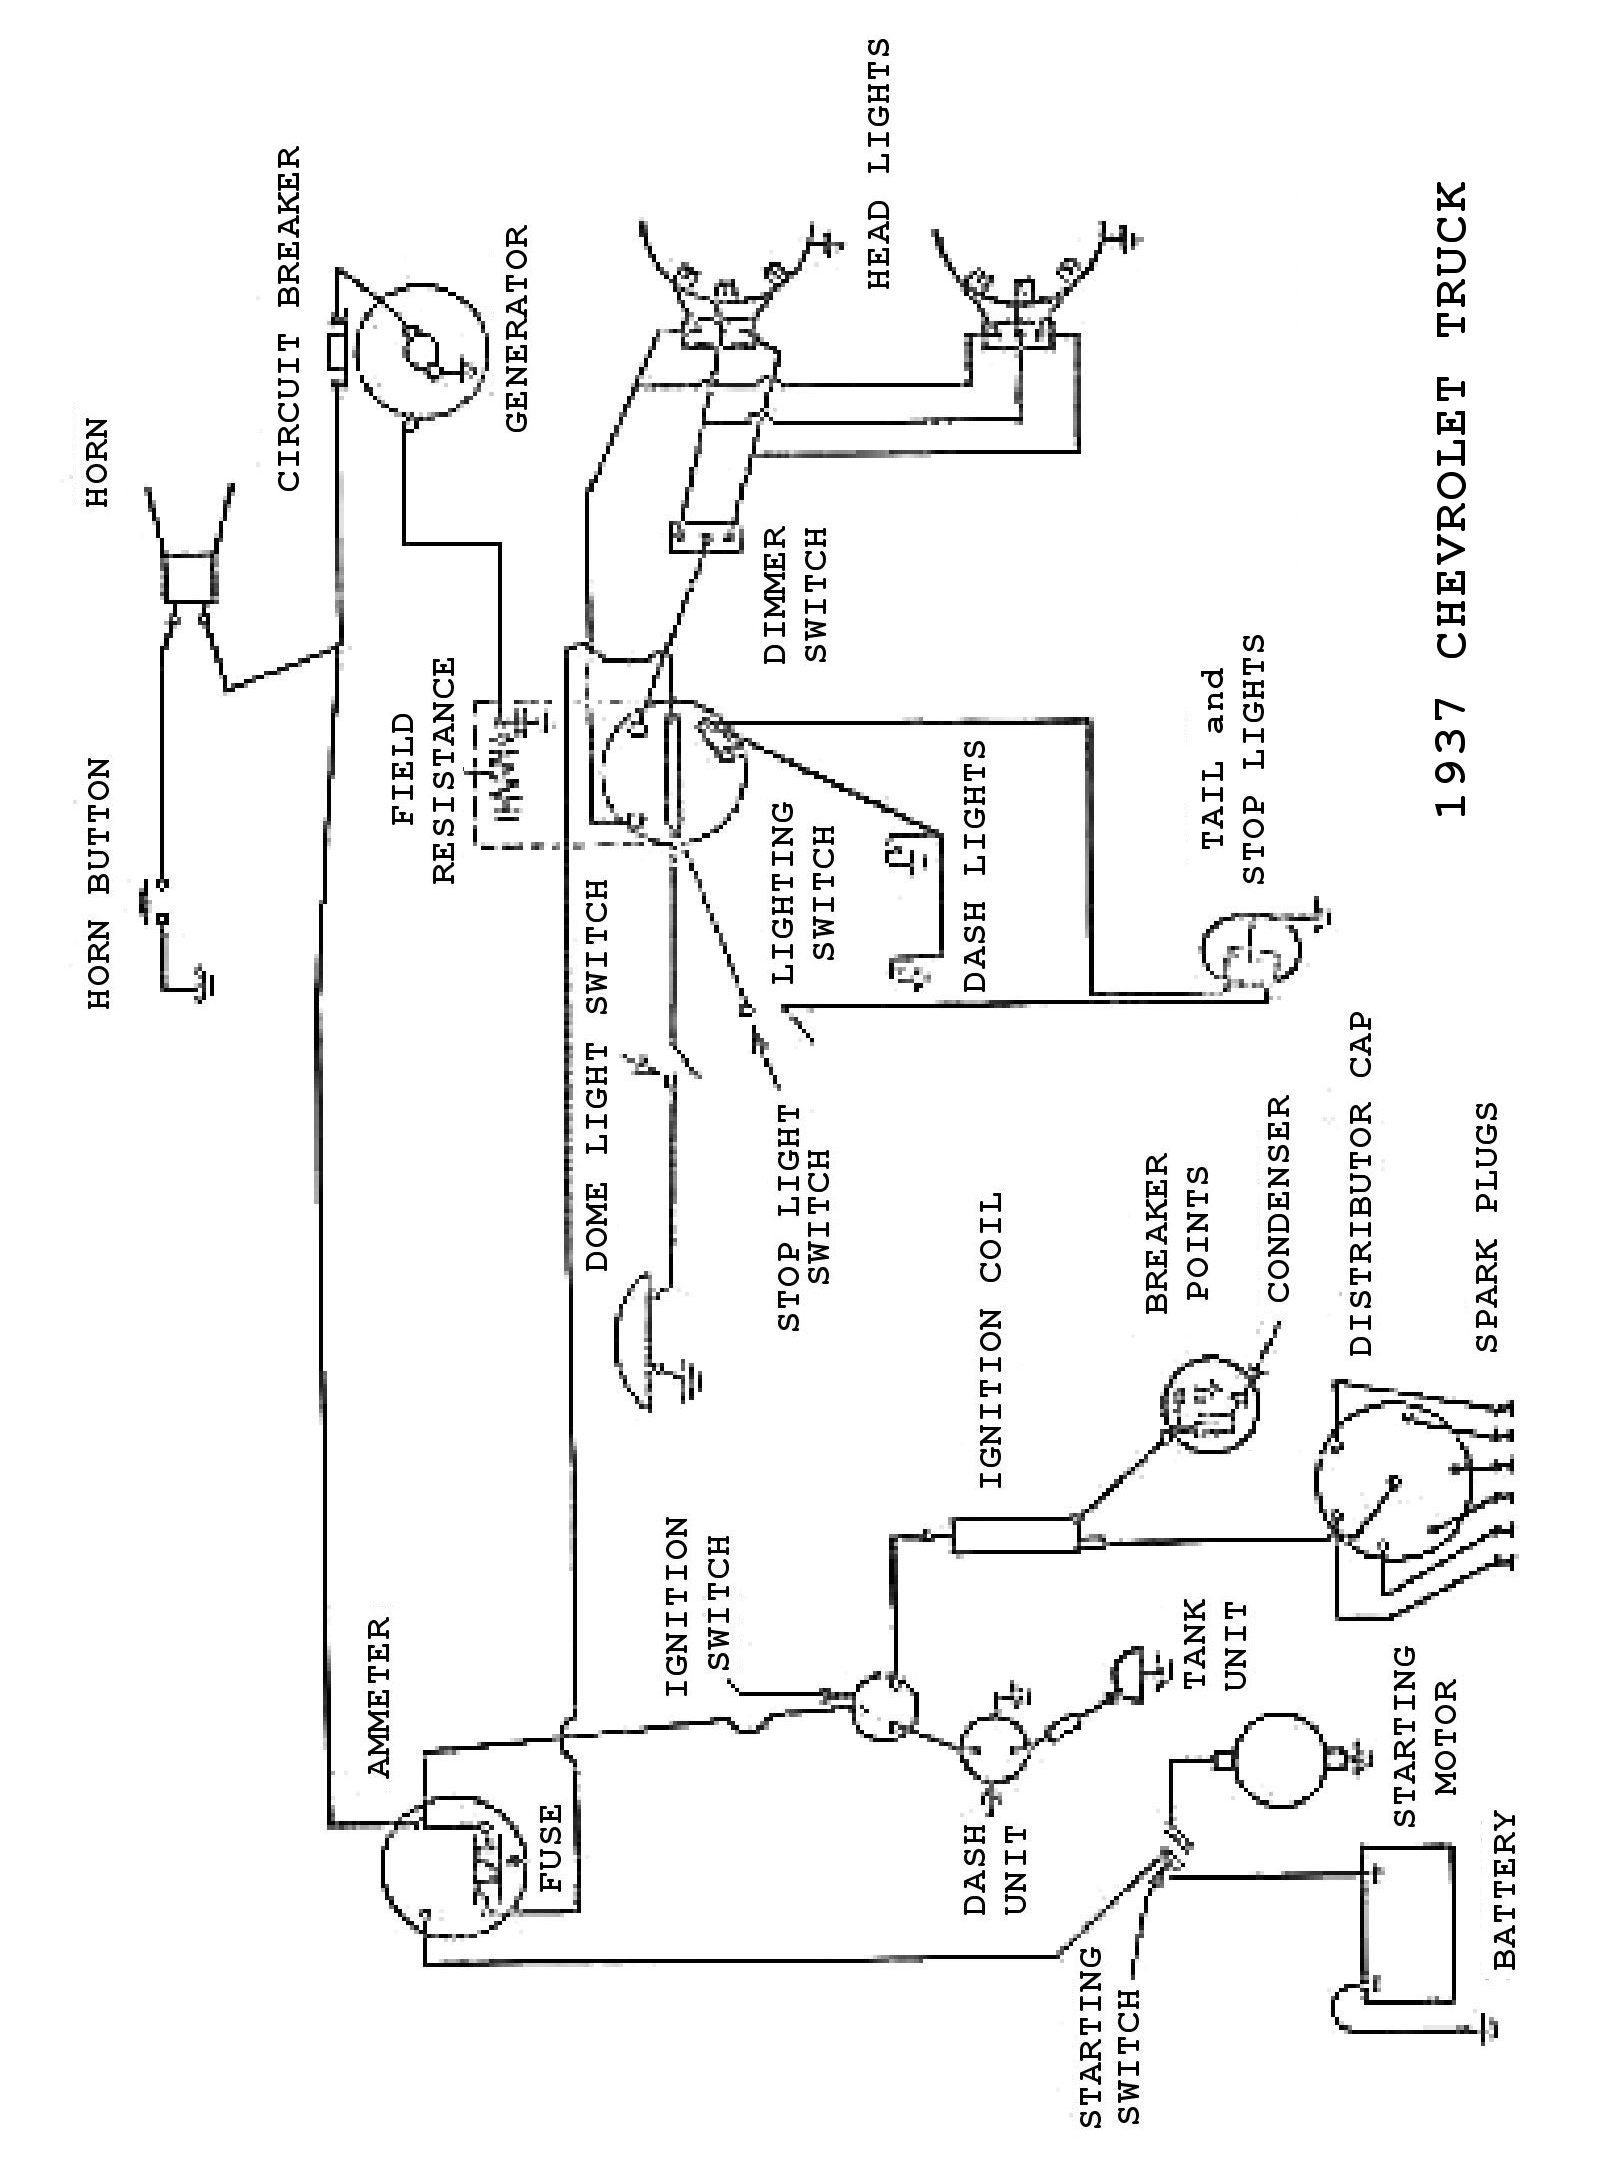 Tremendous Chevy Wiring Diagrams Wiring Cloud Filiciilluminateatxorg